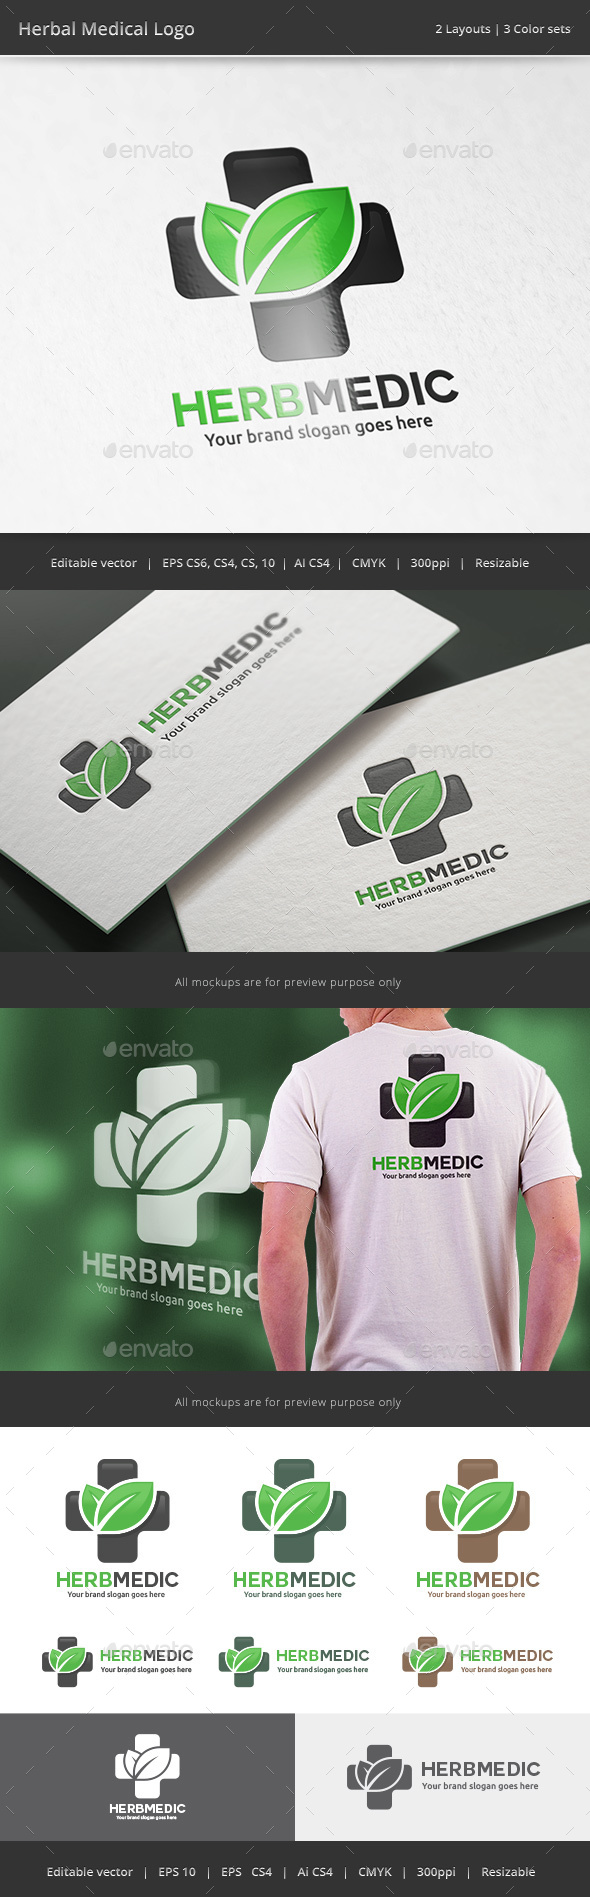 Herbal Medical Logo - Vector Abstract